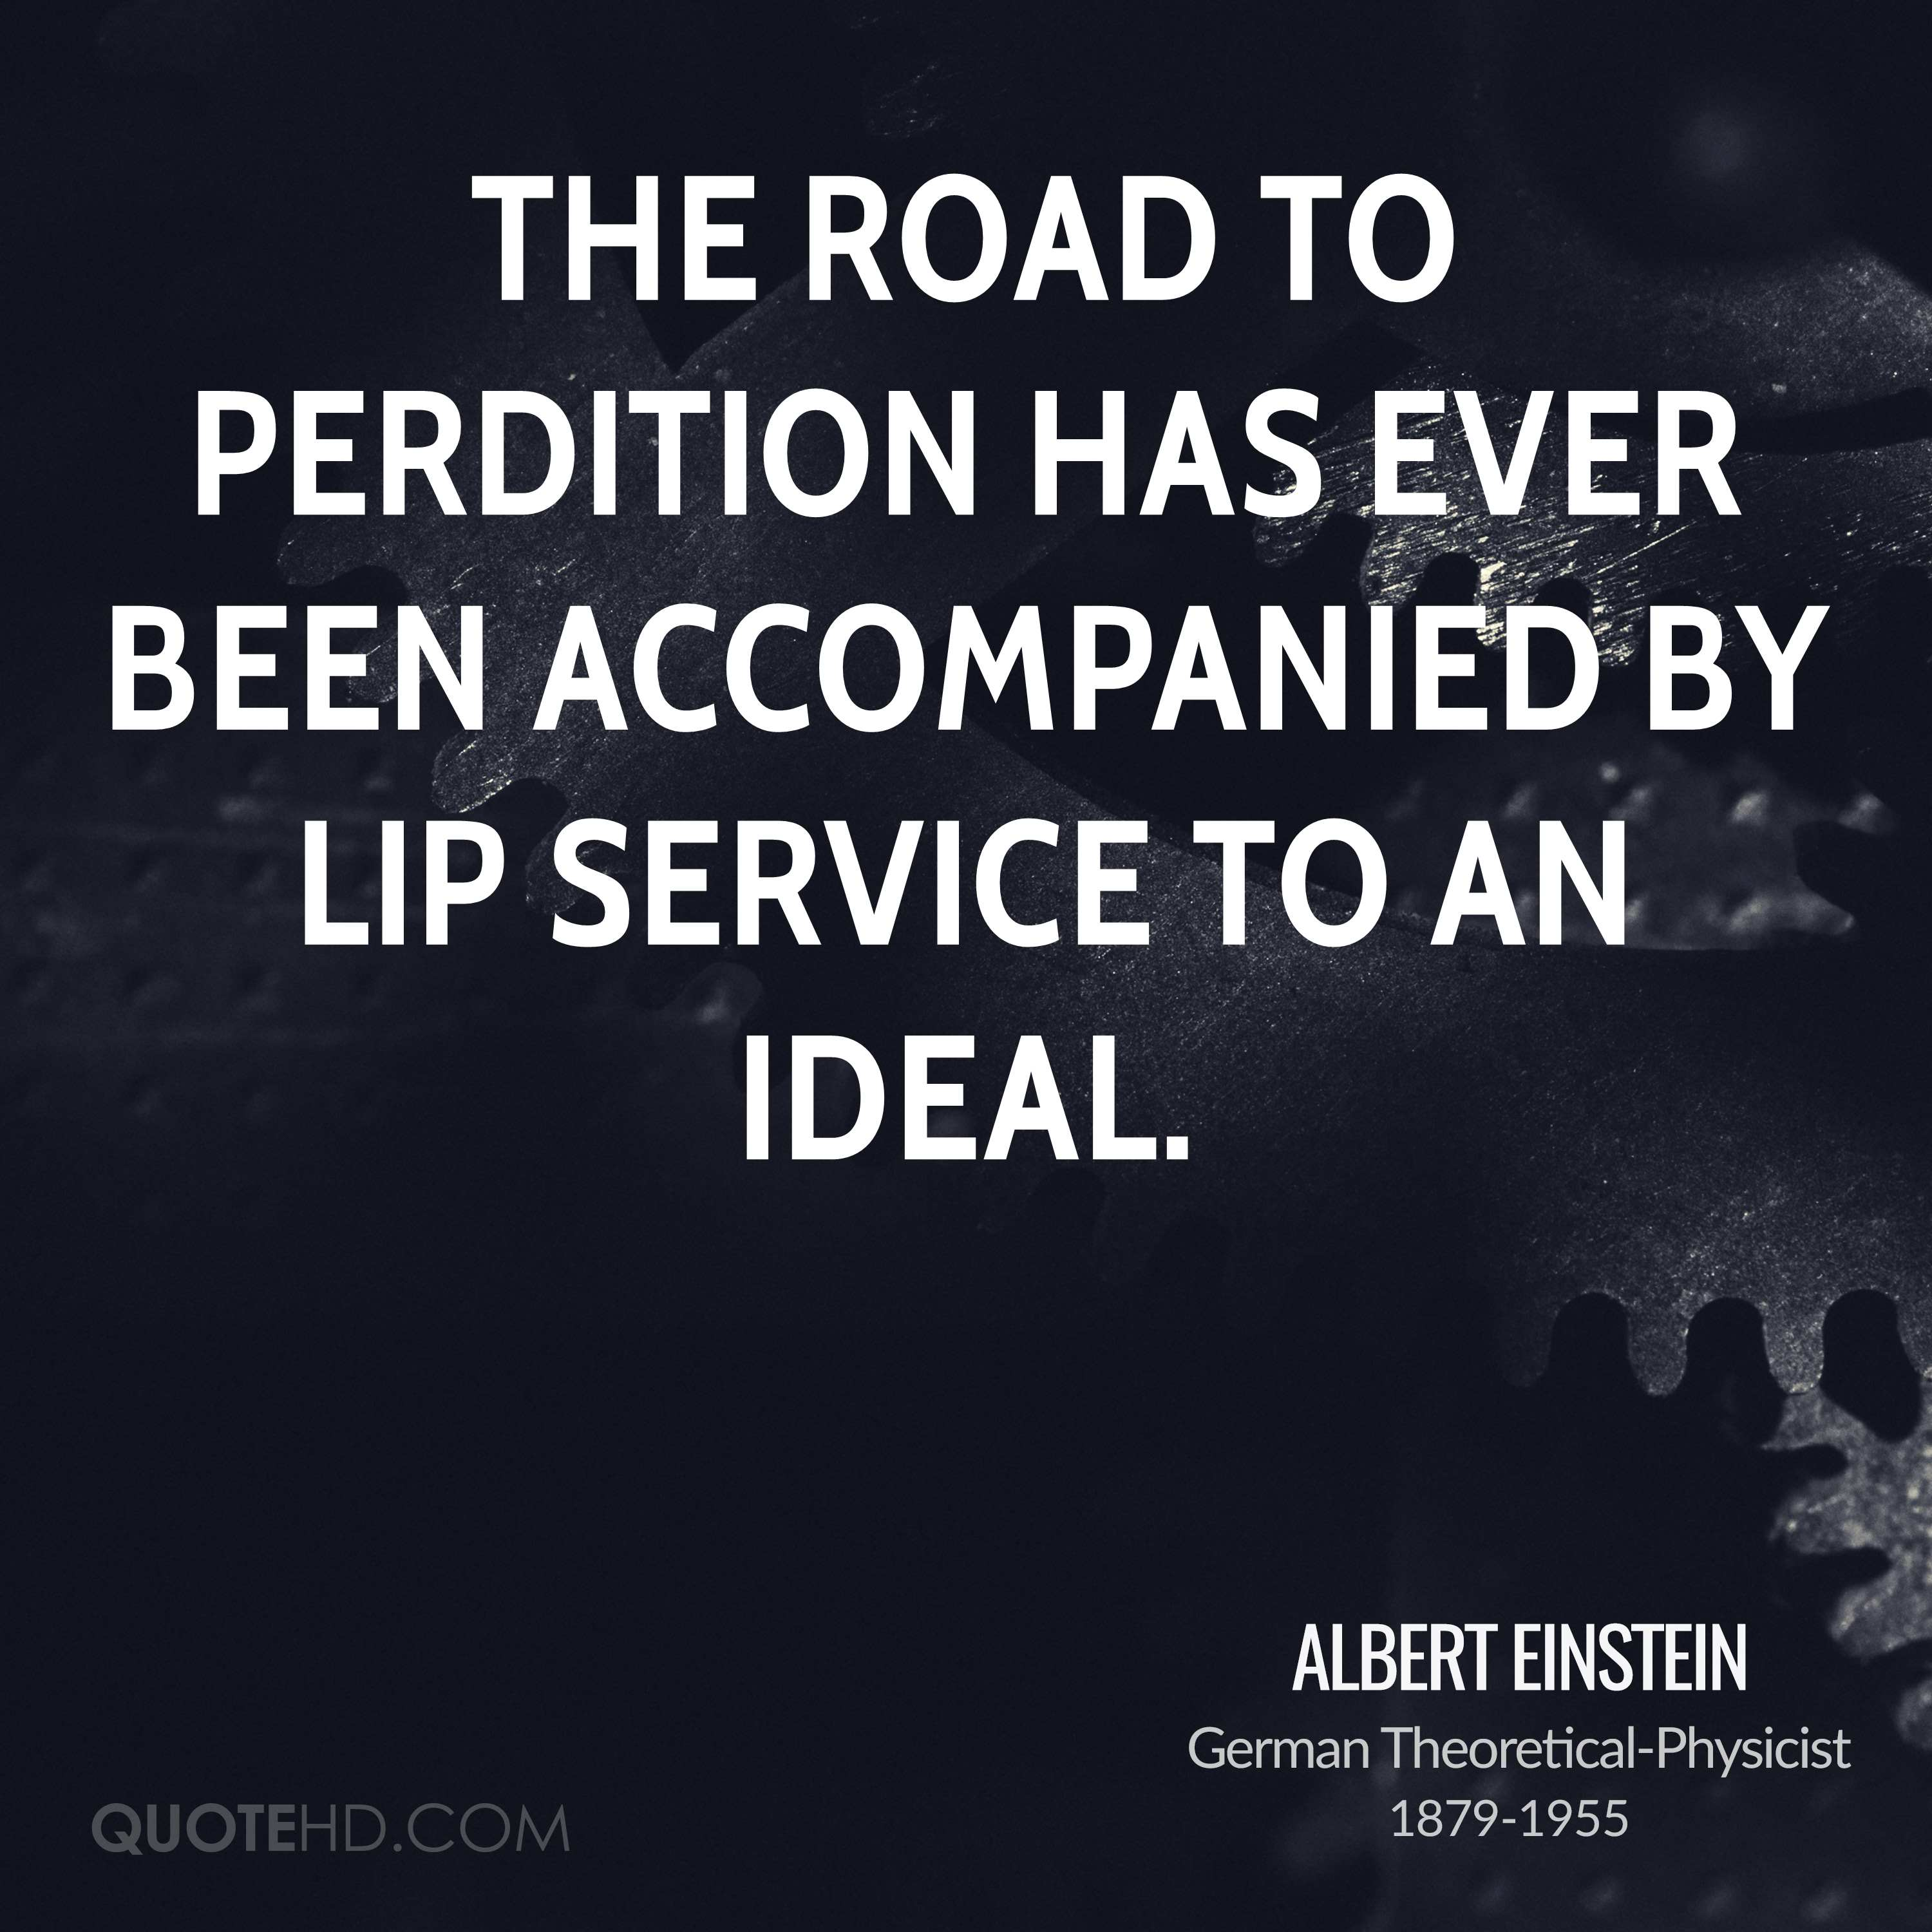 The road to perdition has ever been accompanied by lip service to an ideal.